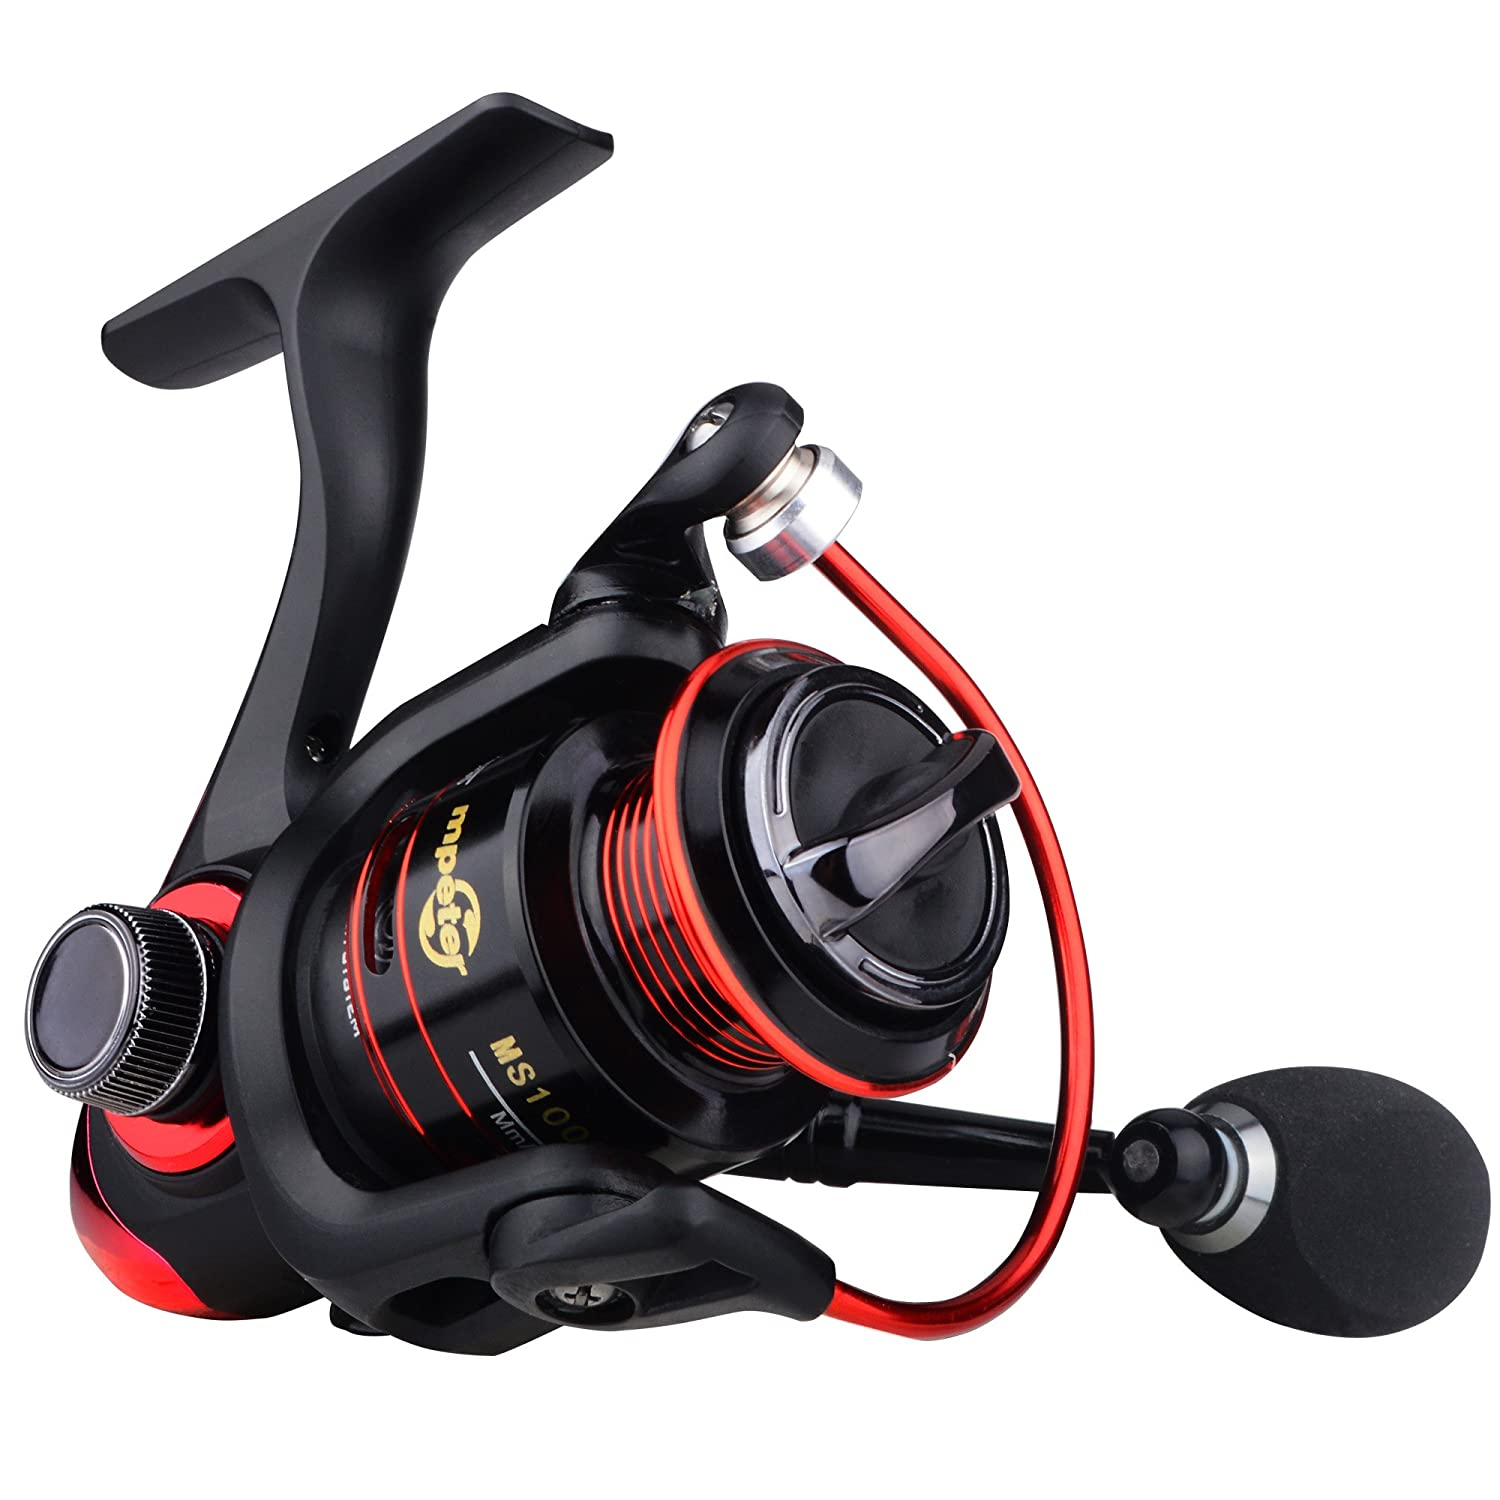 Mpeter Sentinel MS5000 spinning reel